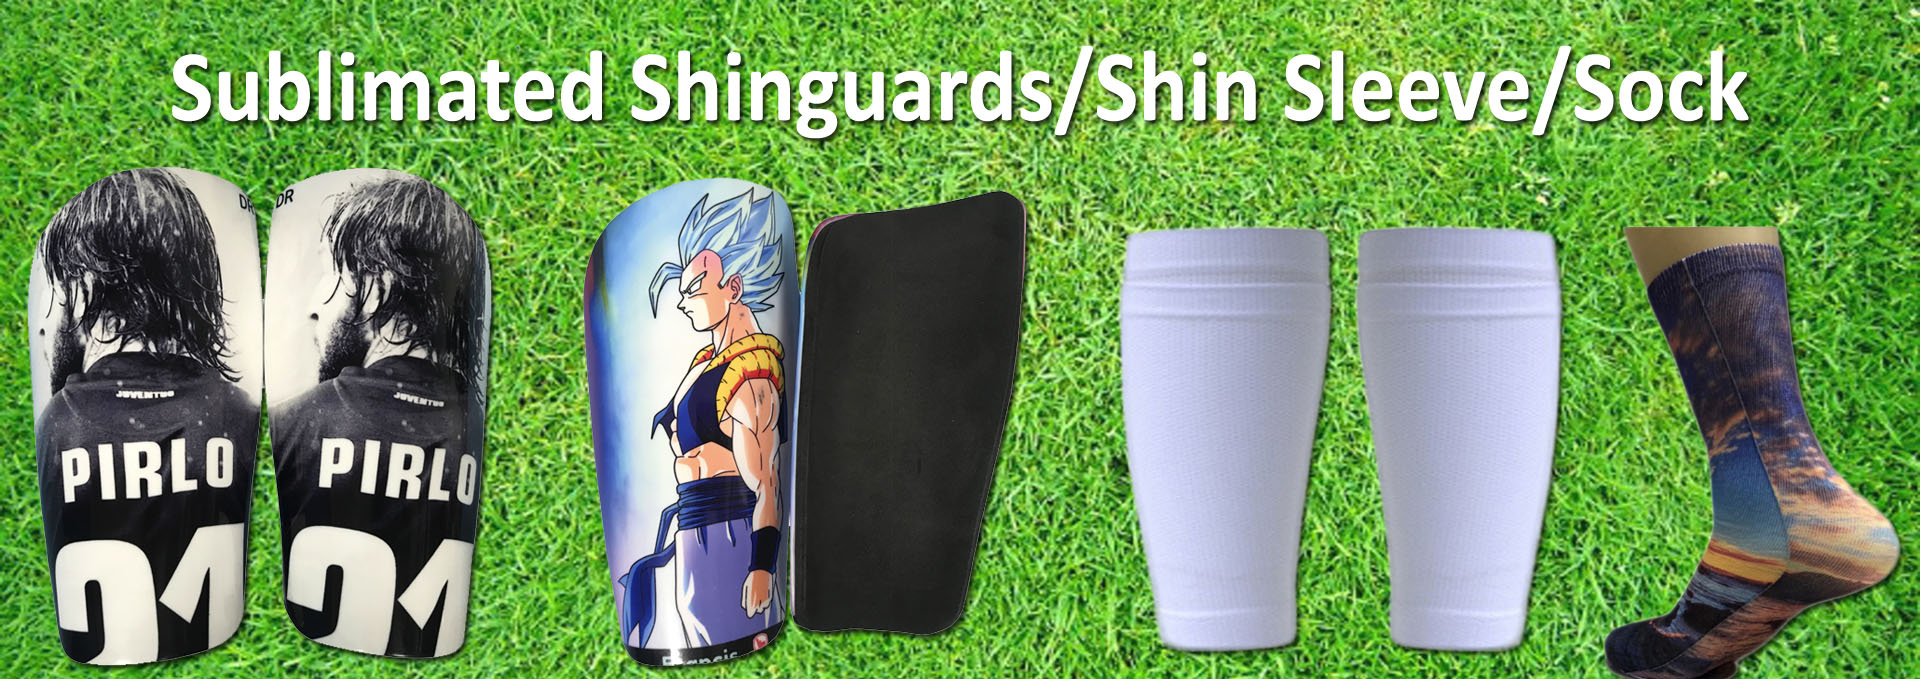 Sublimation Shin Guards